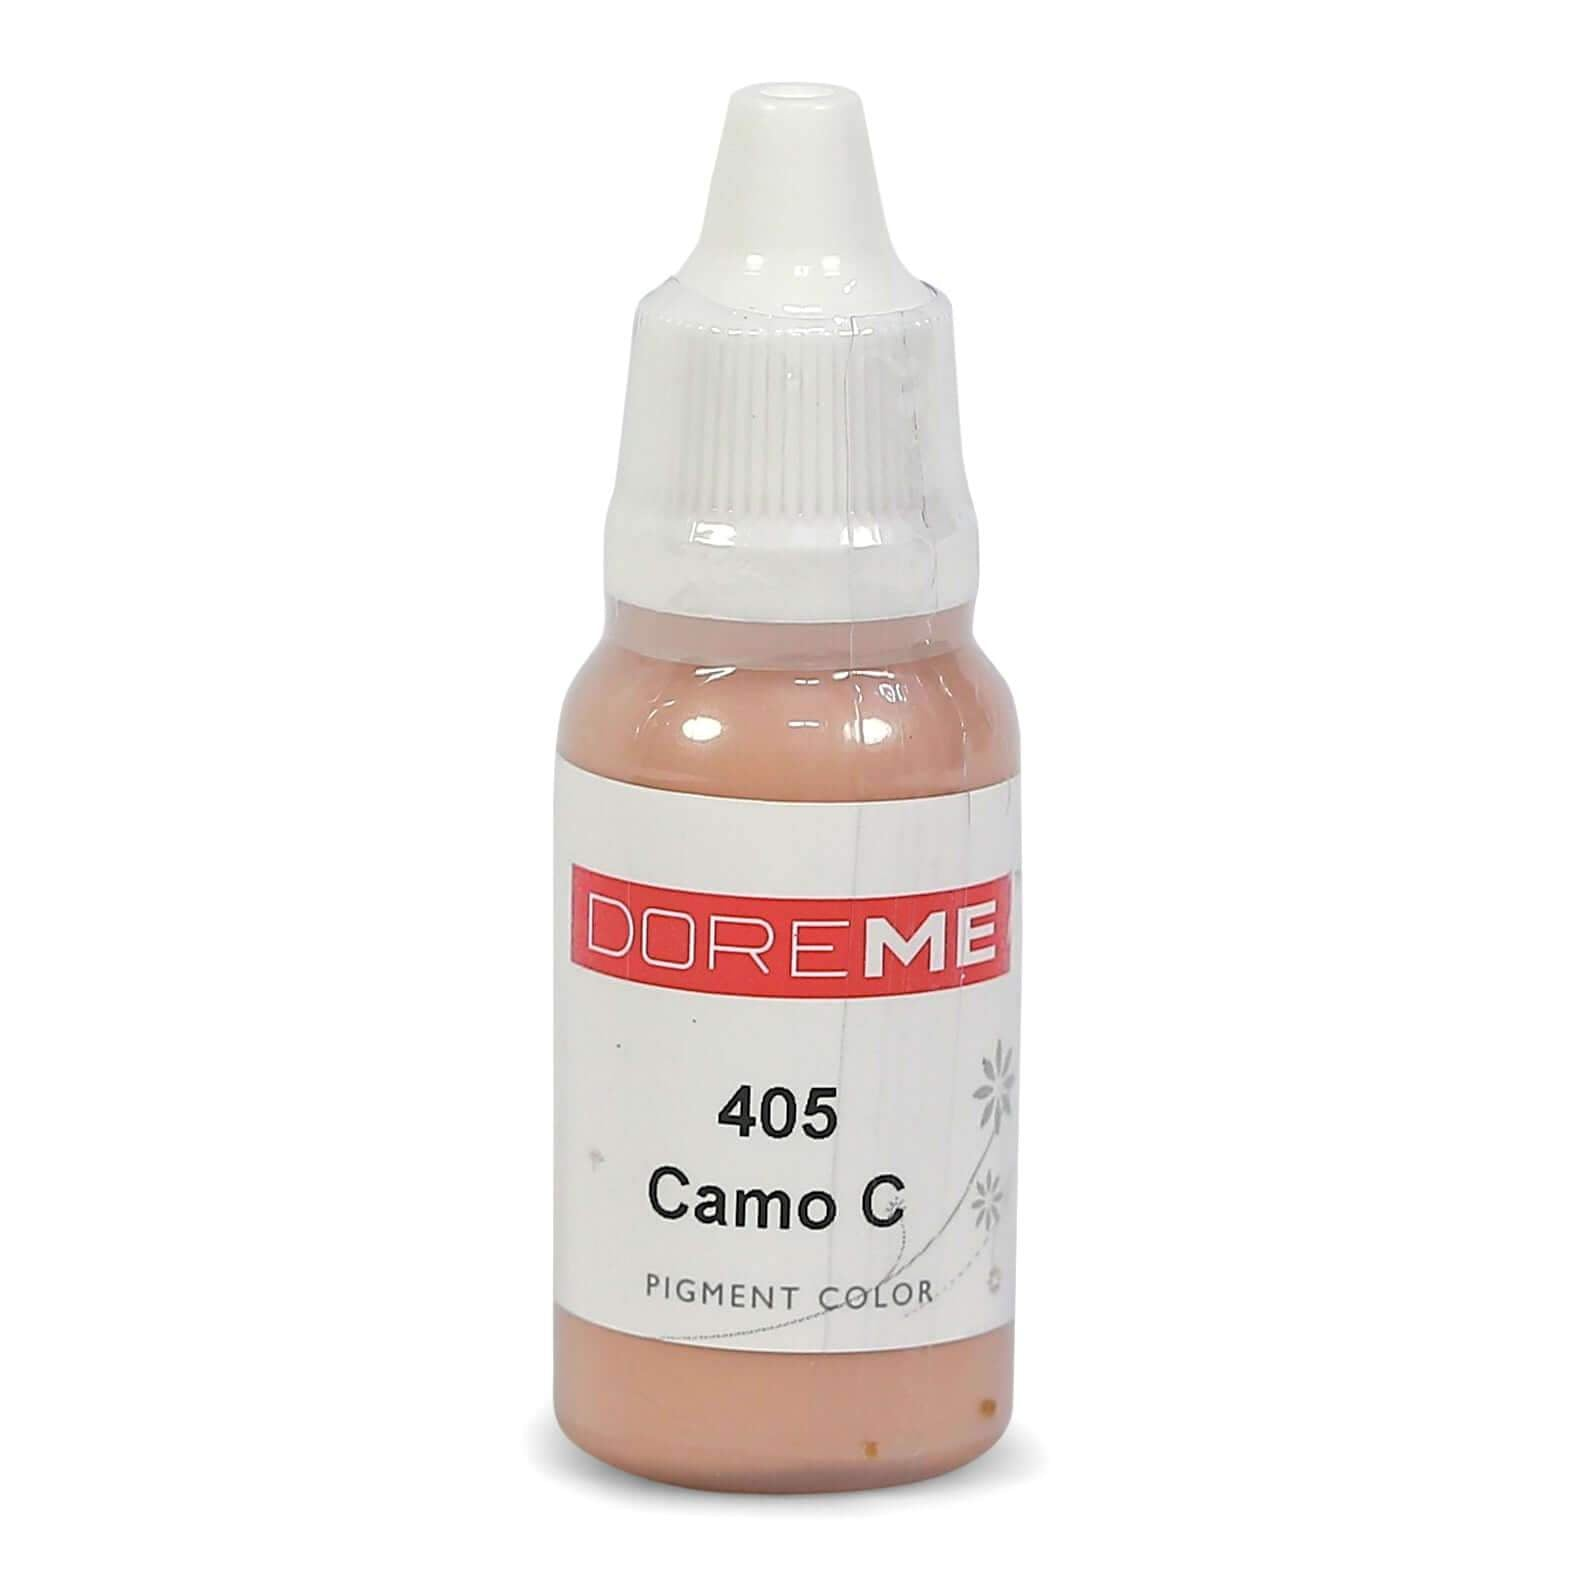 Doreme Skin Camouflage Pigments 405 Camo C (w) - Beautiful Ink UK trade and wholesale supplier